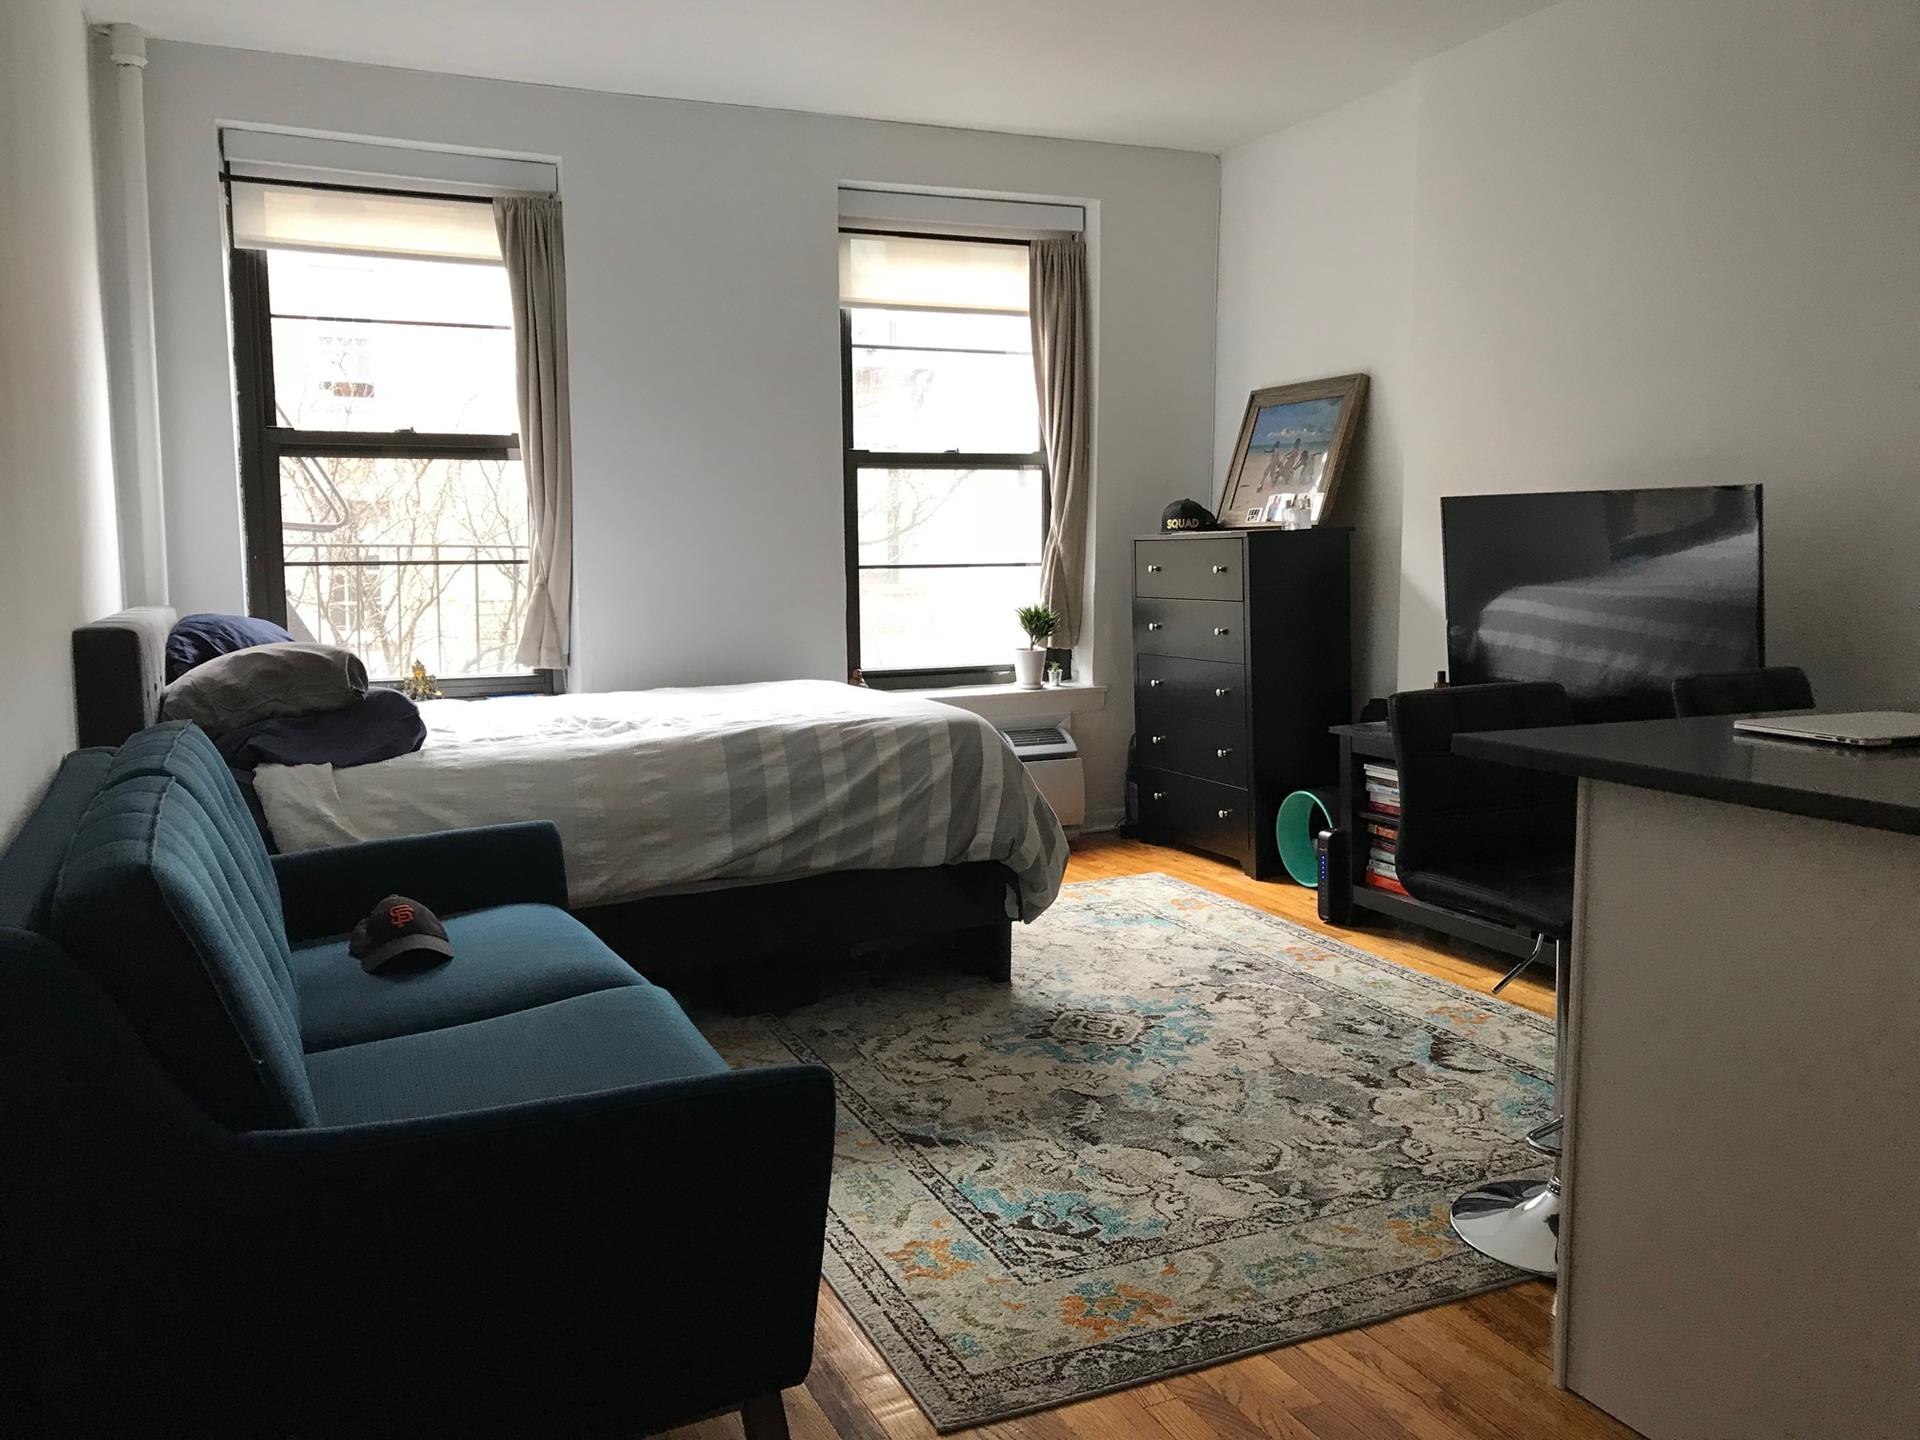 19-21 Grove St, 4B - West Village - Meatpacking District, New York